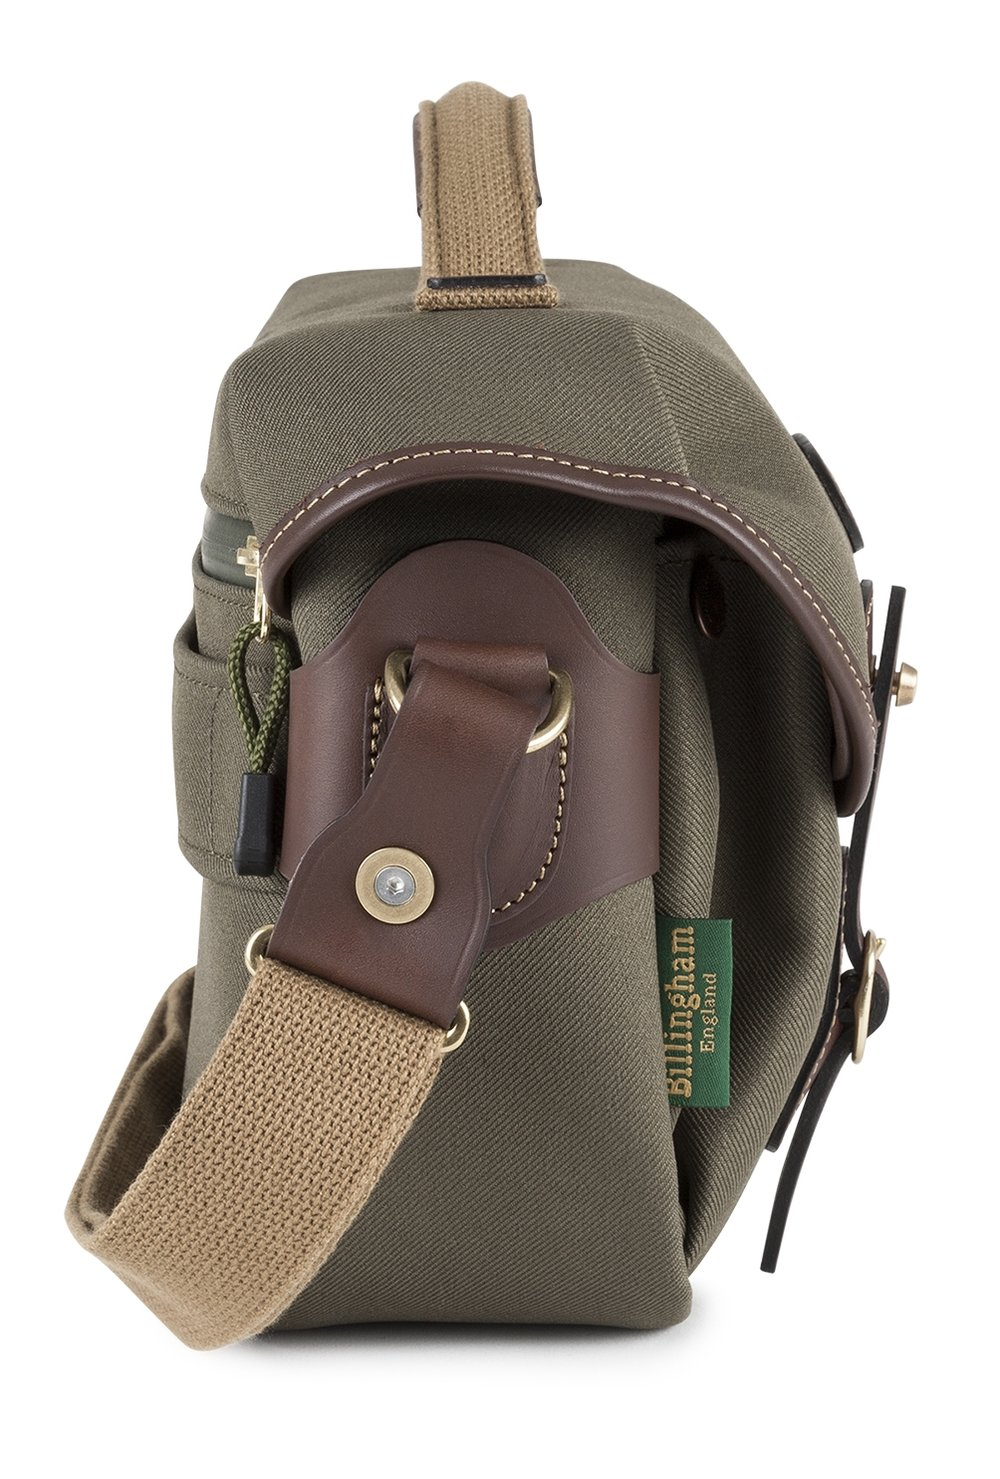 The shoulder strap can now be detached to turn the bag into a neat and spacious photo briefcase